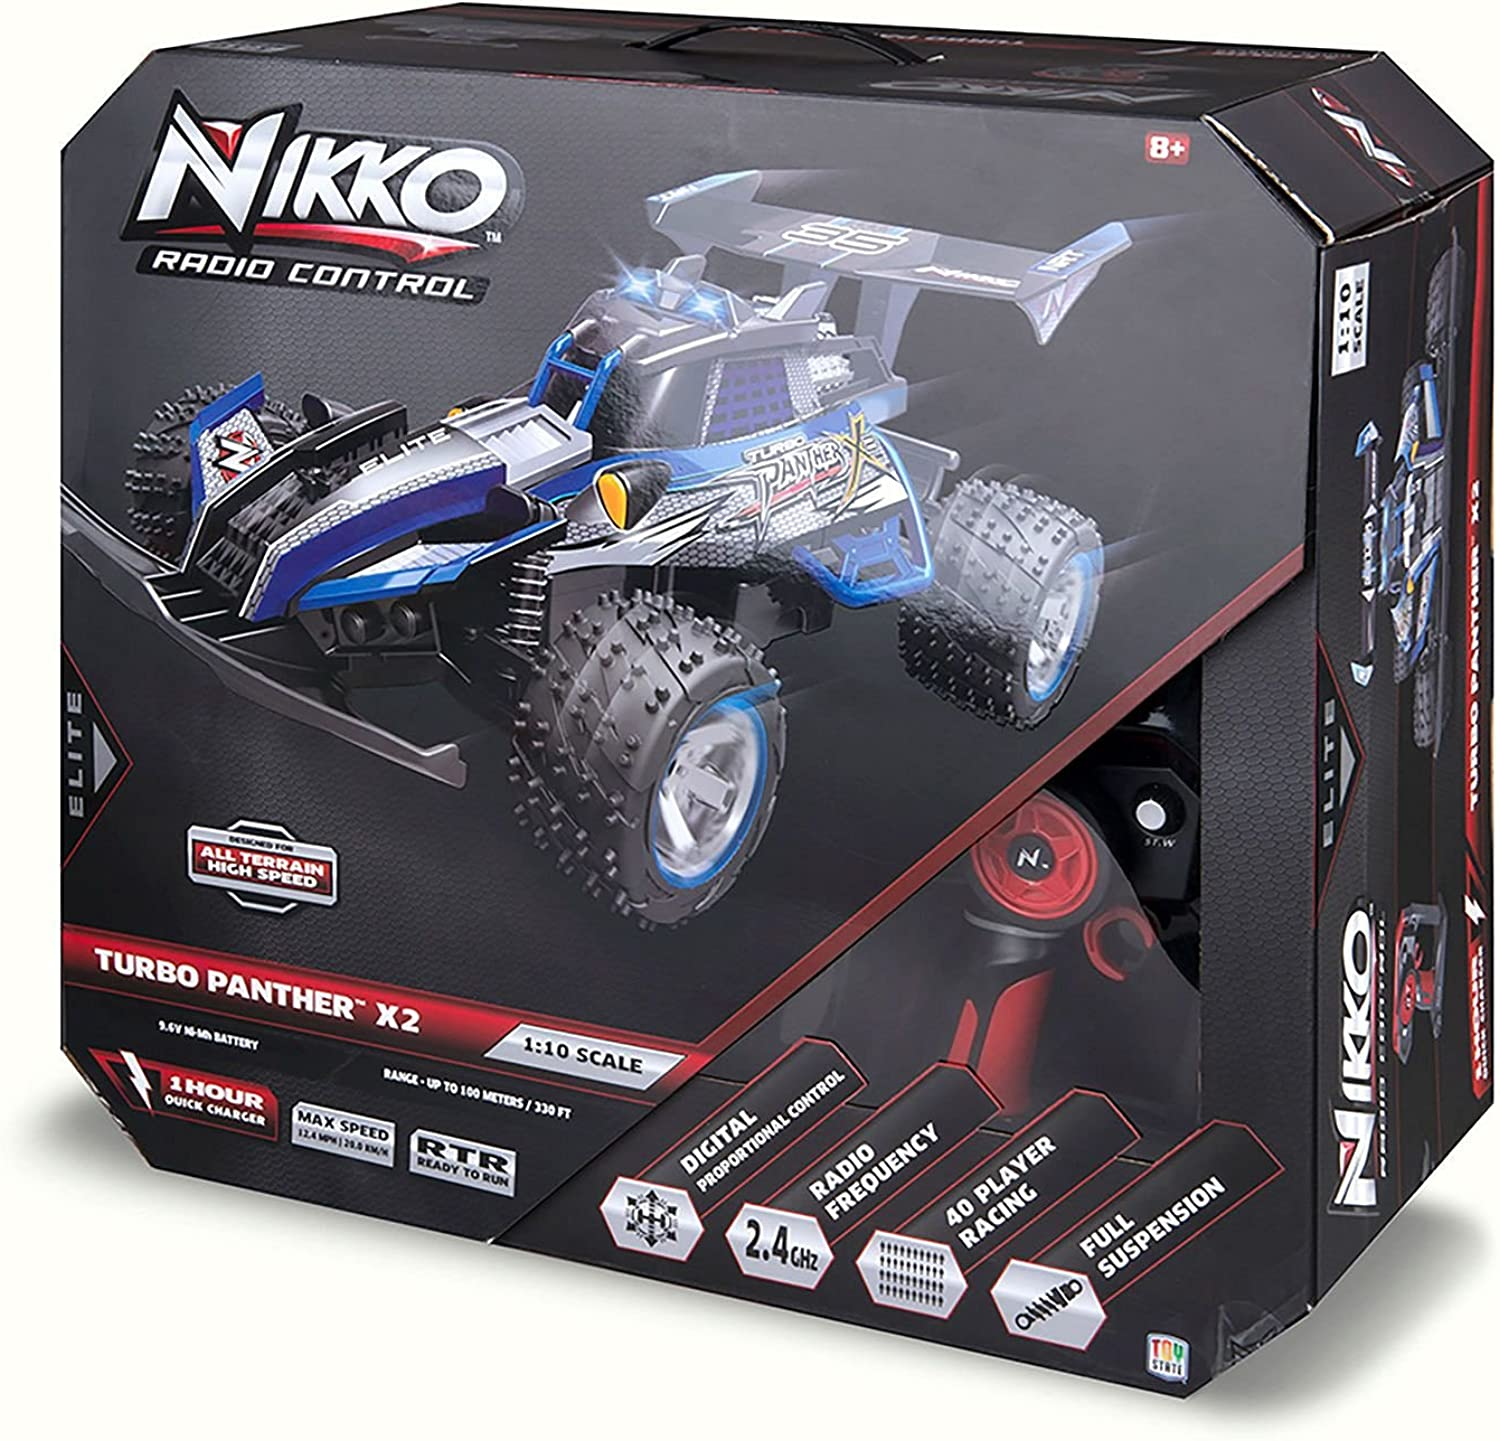 Toy State Nikko Turbo Panther X2 bluee 1 10 Scale Radio Control (FFP) Vehicle by Toystate